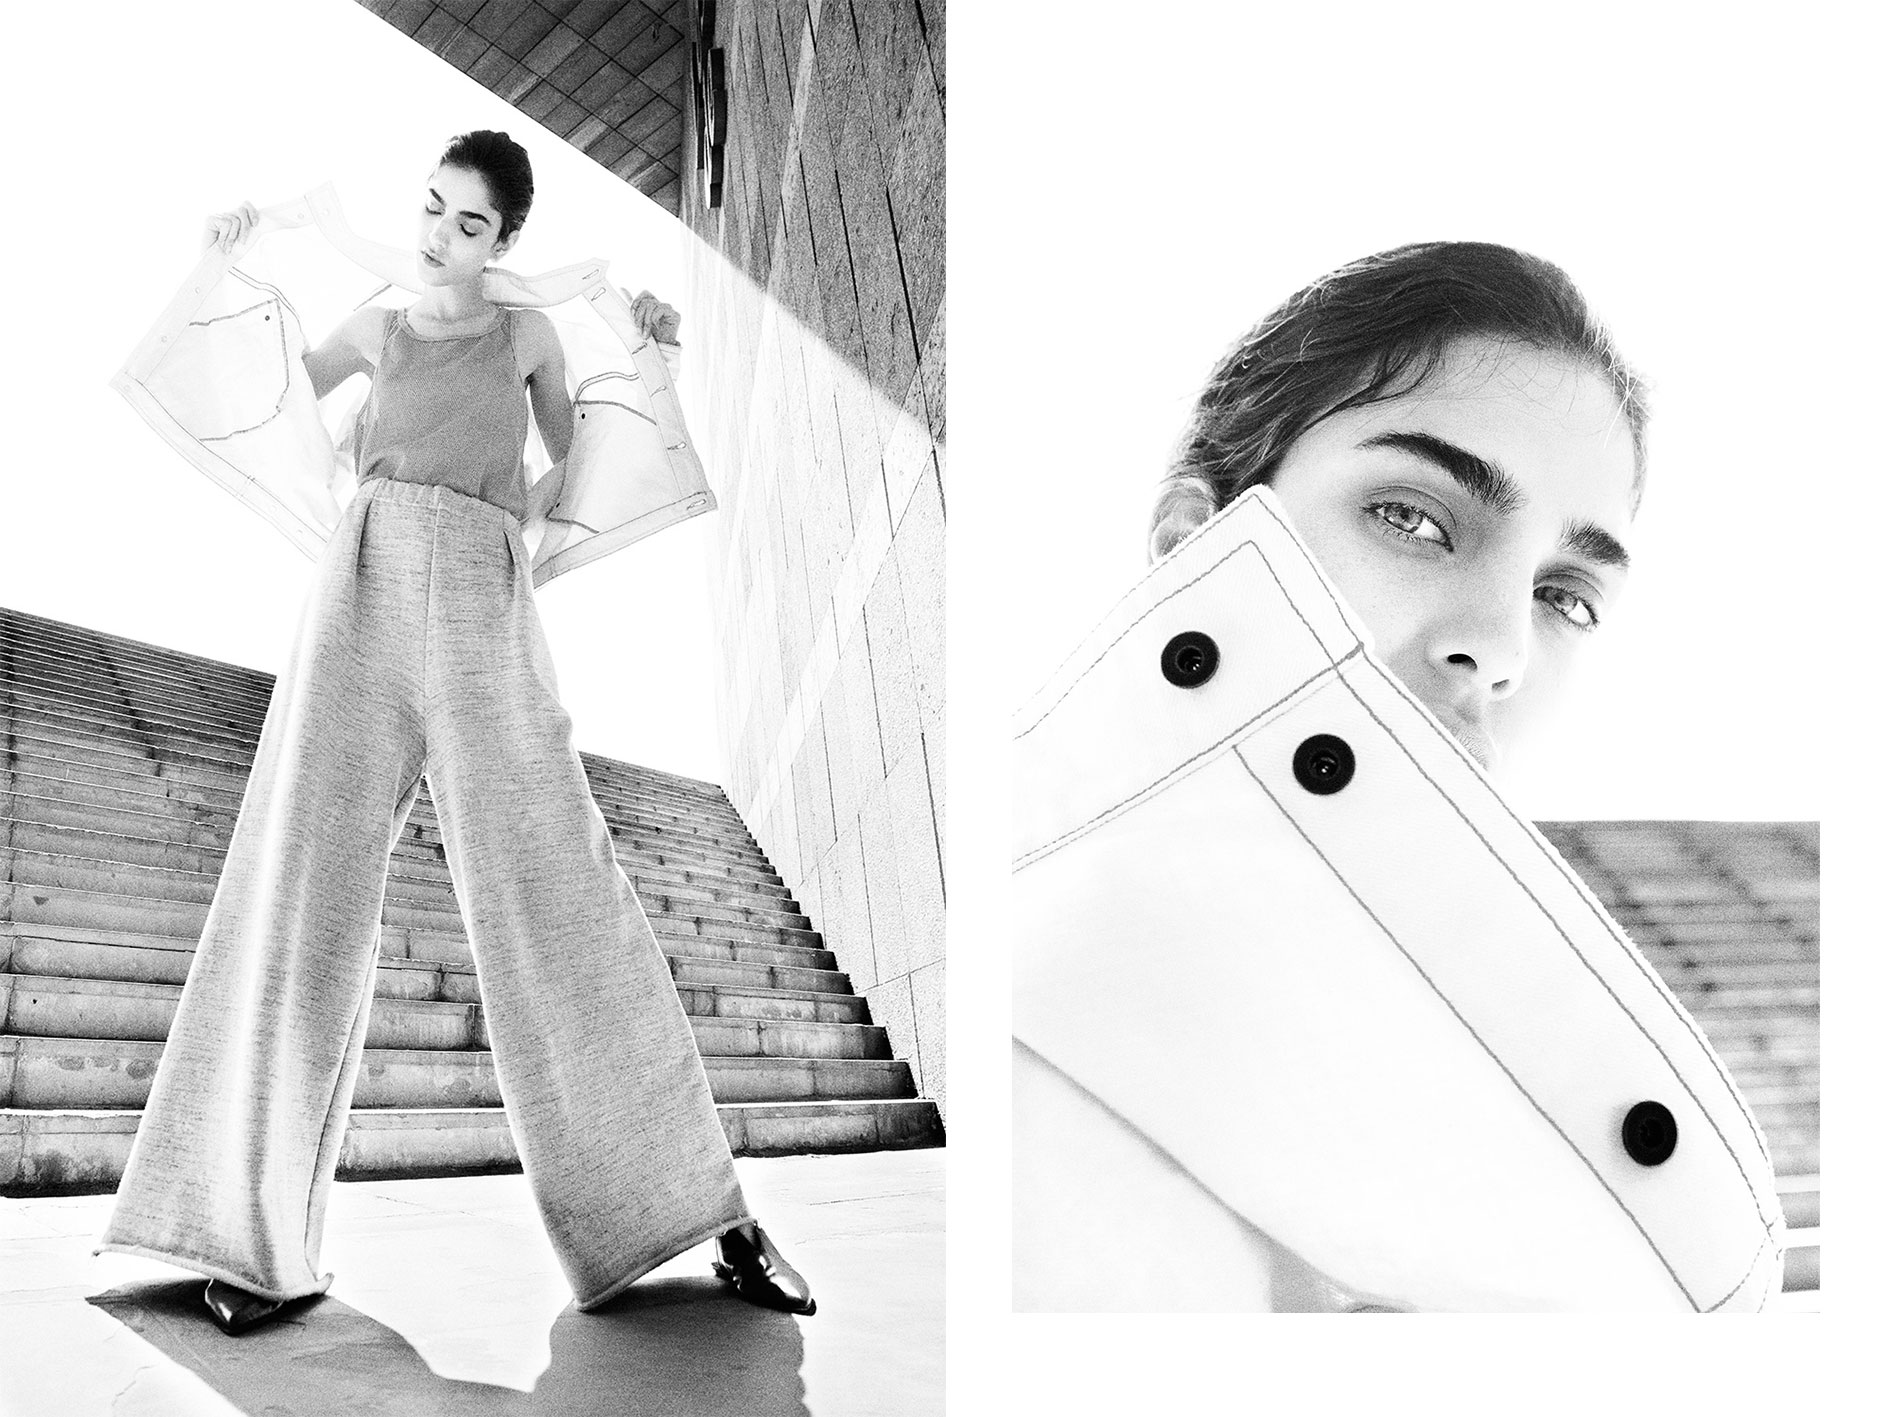 Black and white photography by Benjamin Tietge for MONROWE magazine